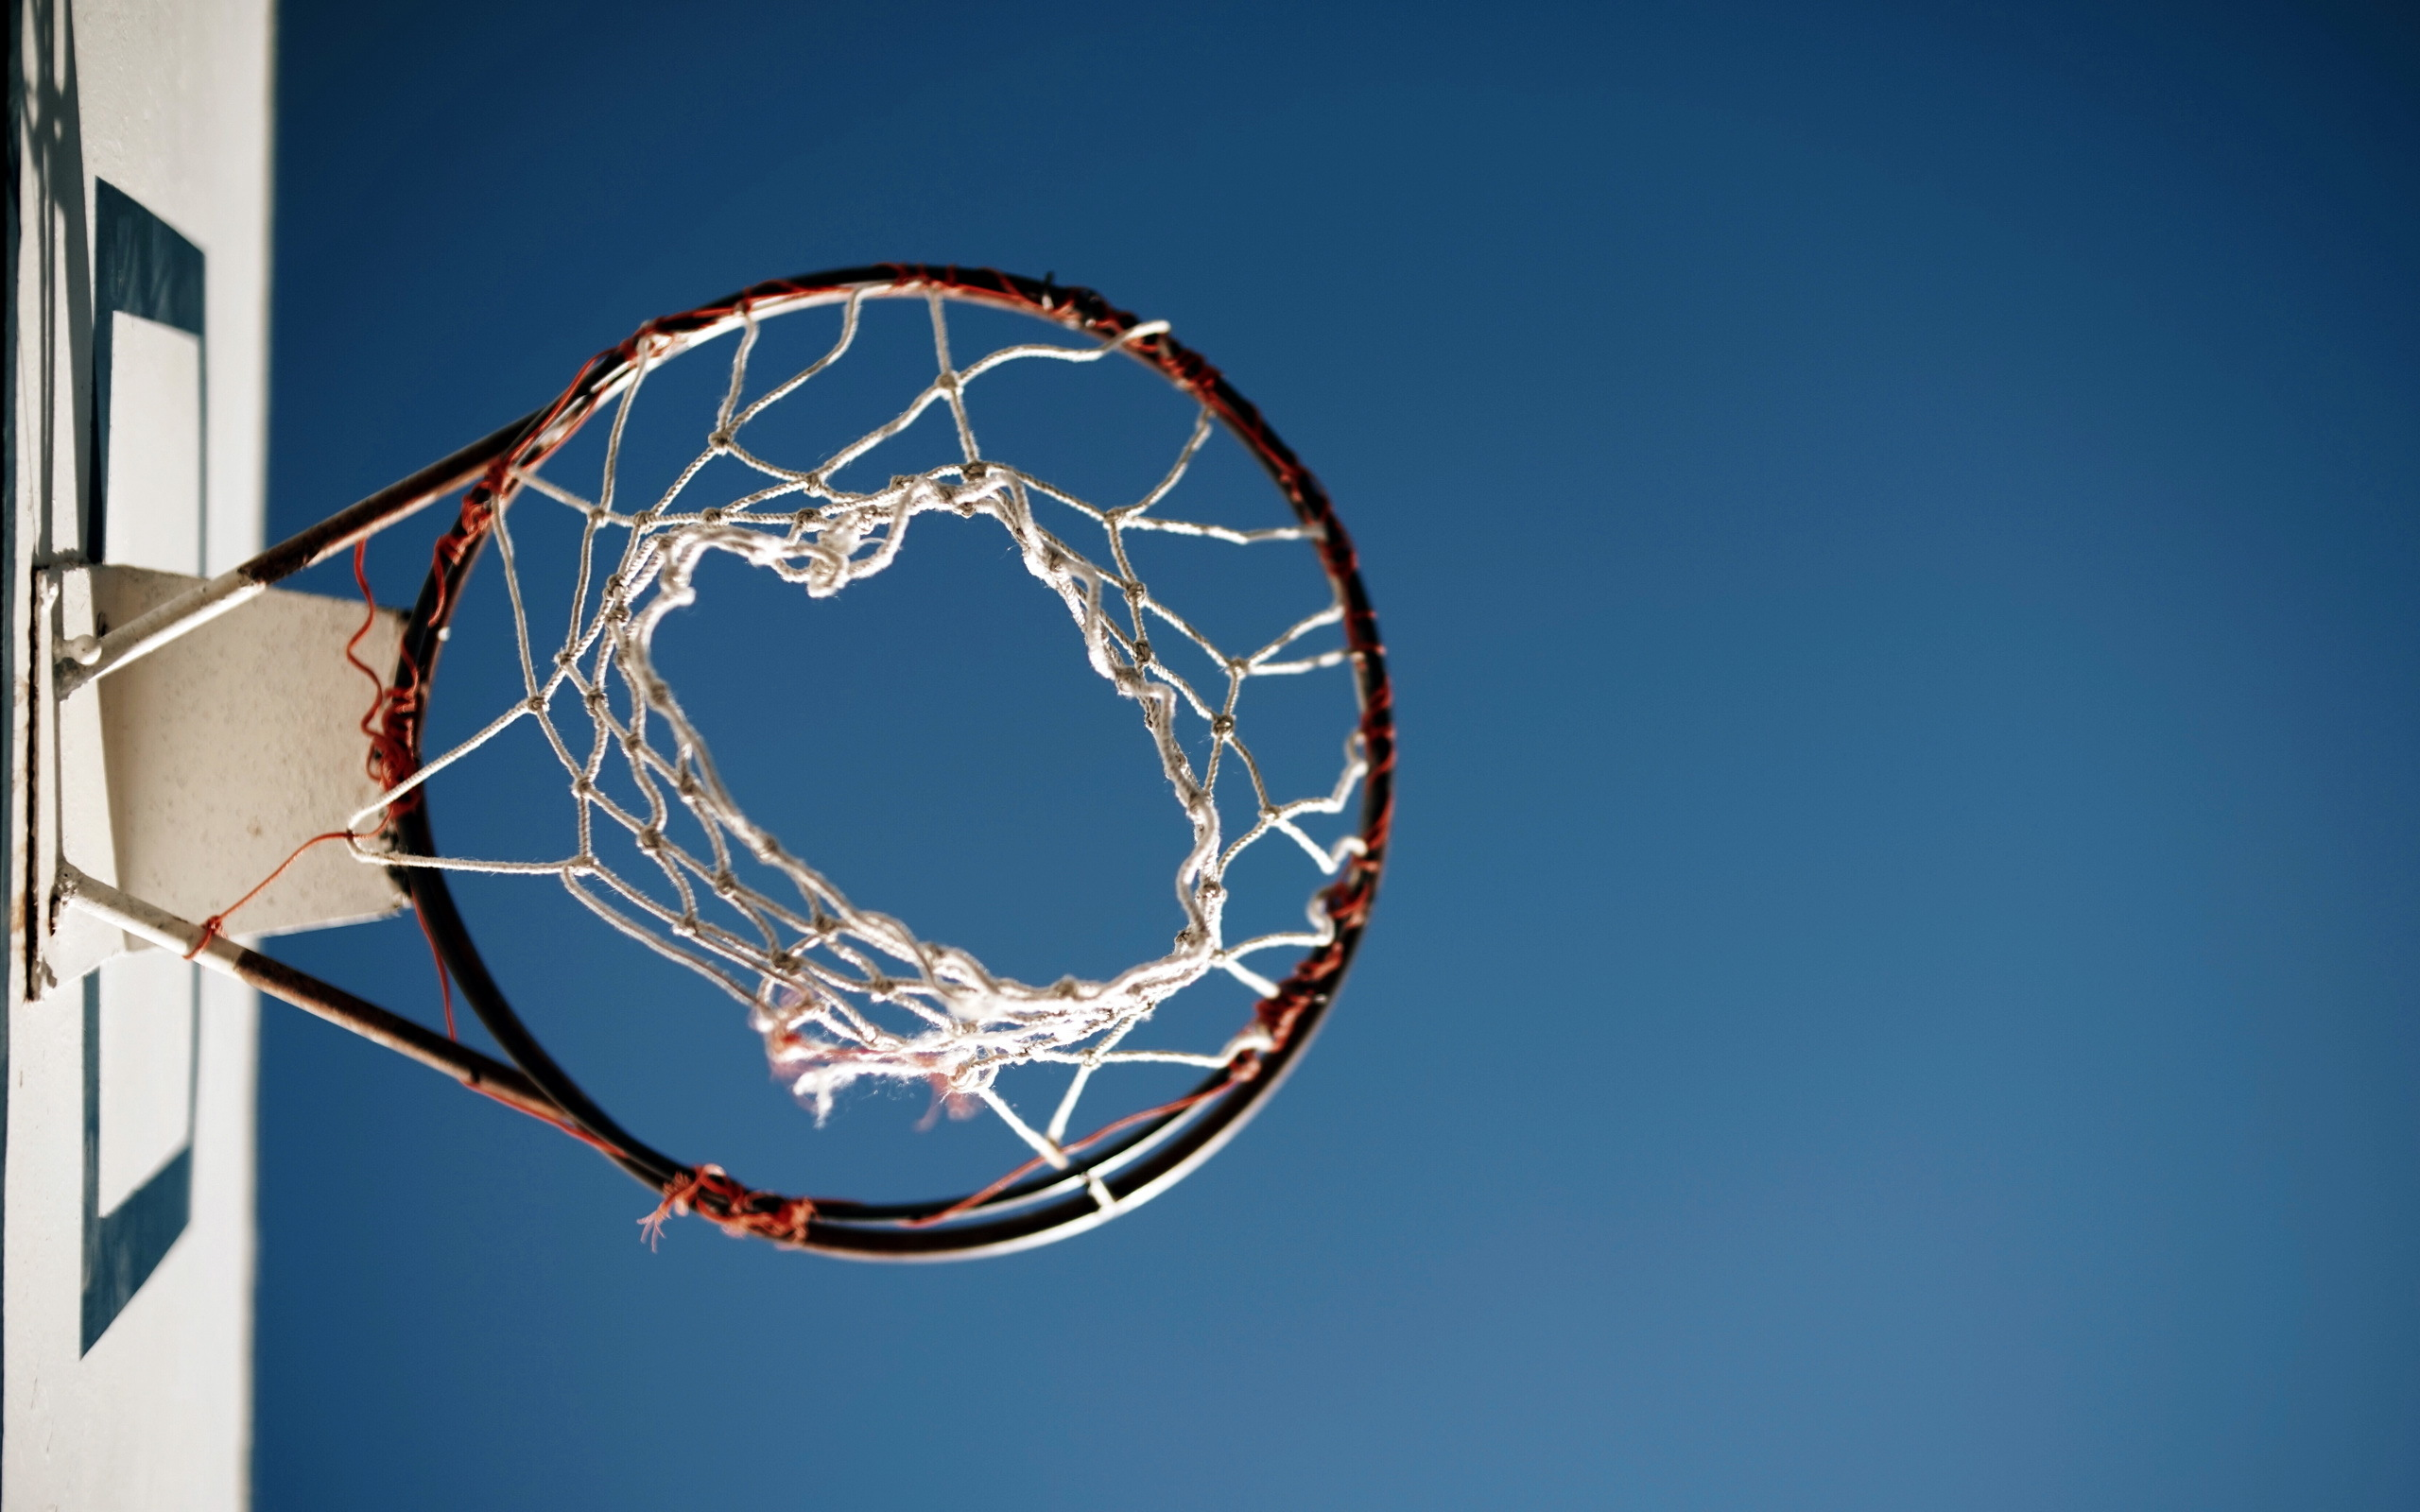 Basketball Hoop Wallpaper Background 62268 2560x1600px Basketball Hoop Wallpaper Background 62268